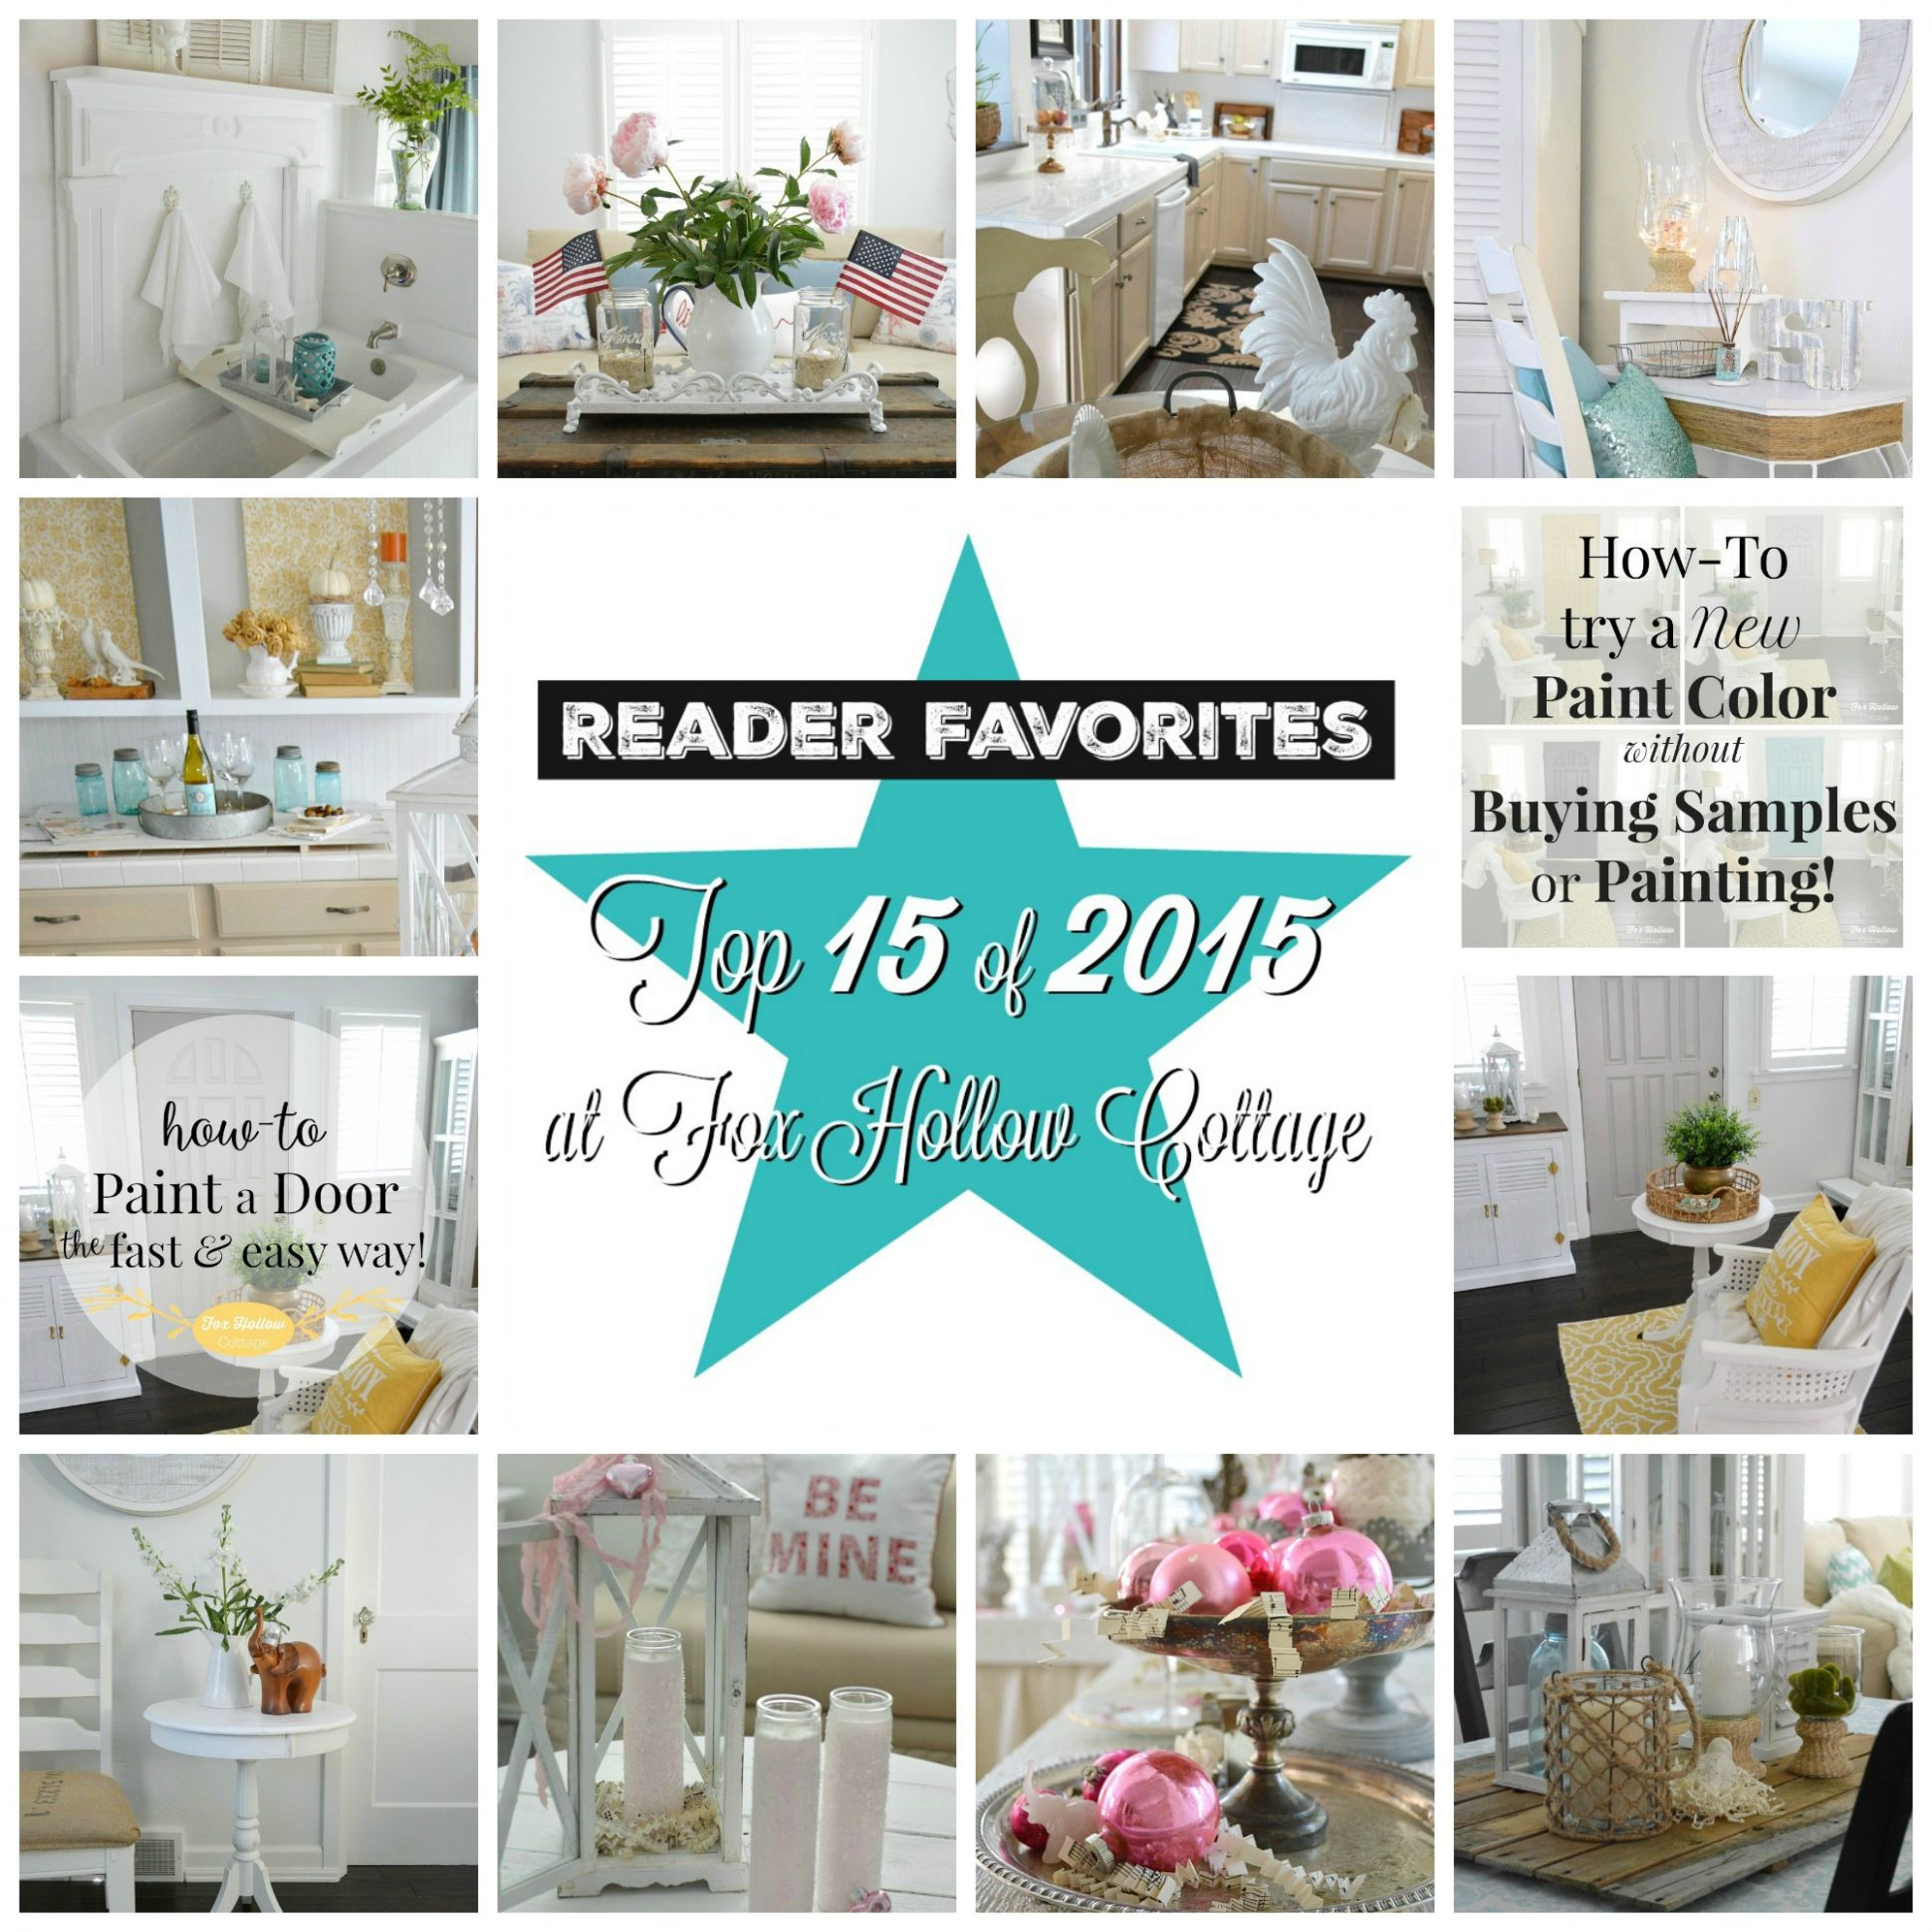 Top 11 DIY Craft and Home Decorating Projects of 2011 - diy home decor blogs